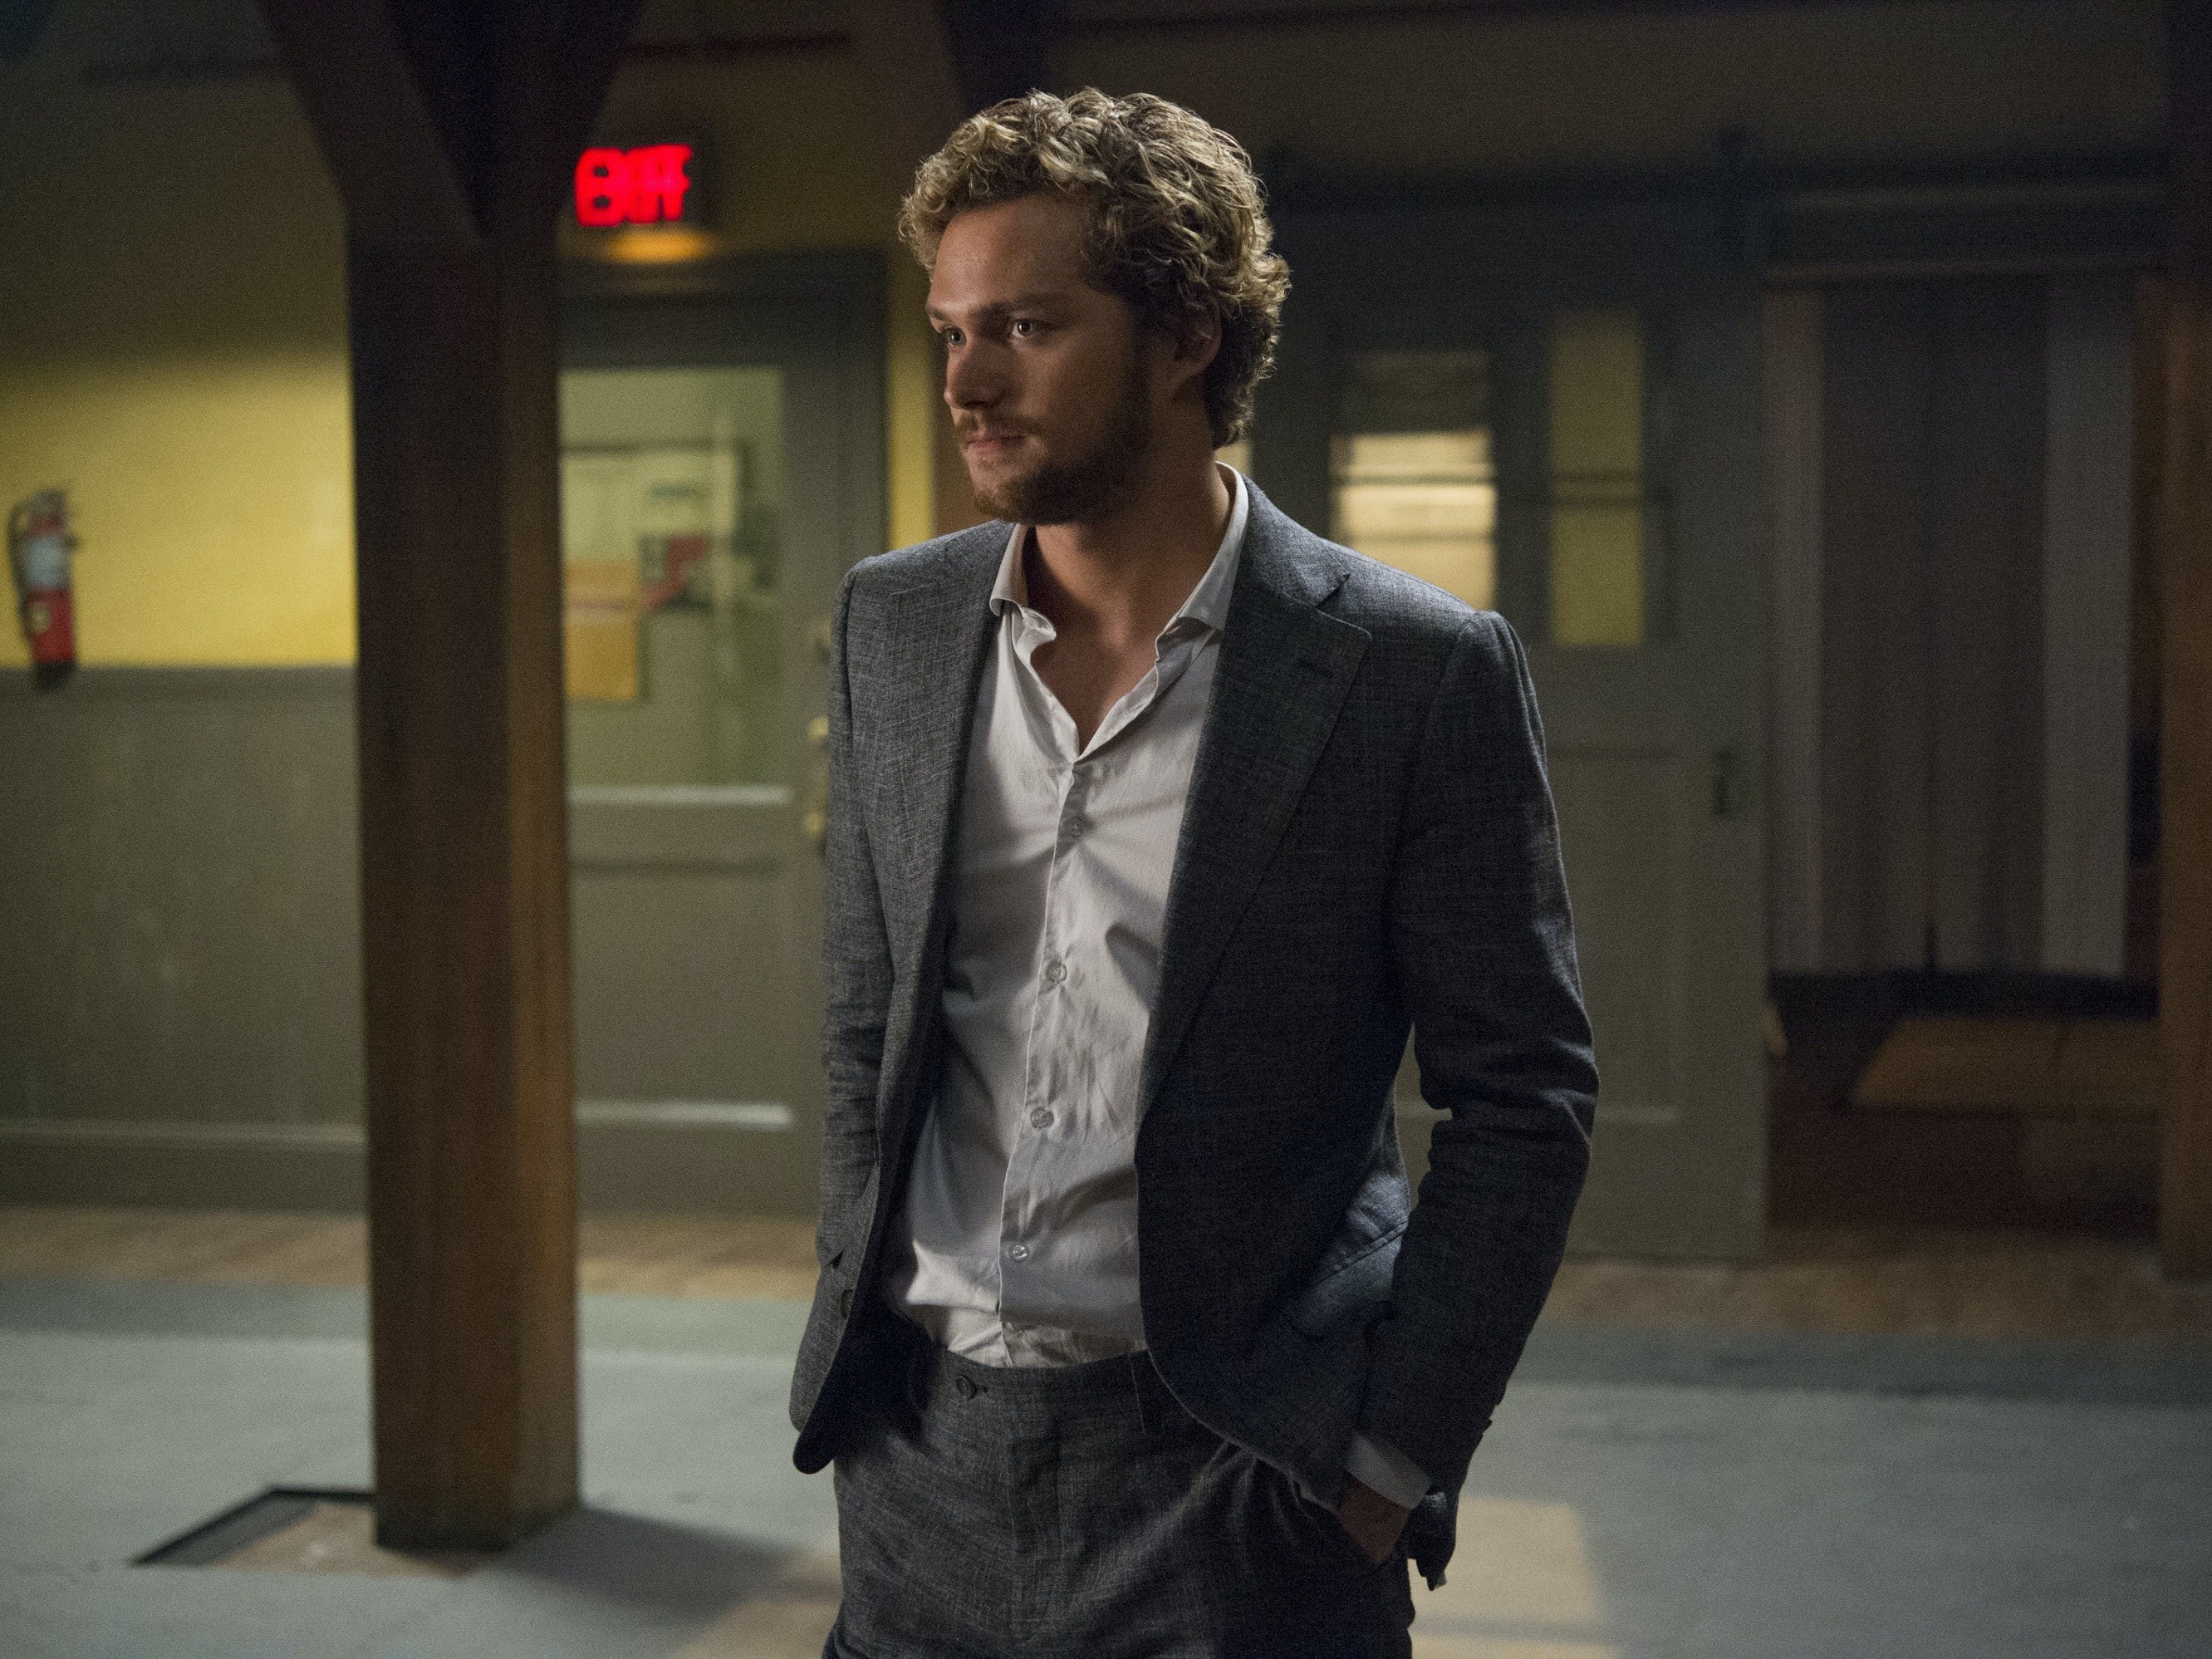 The Whitest Thing About 'Iron Fist' Was Chinatown